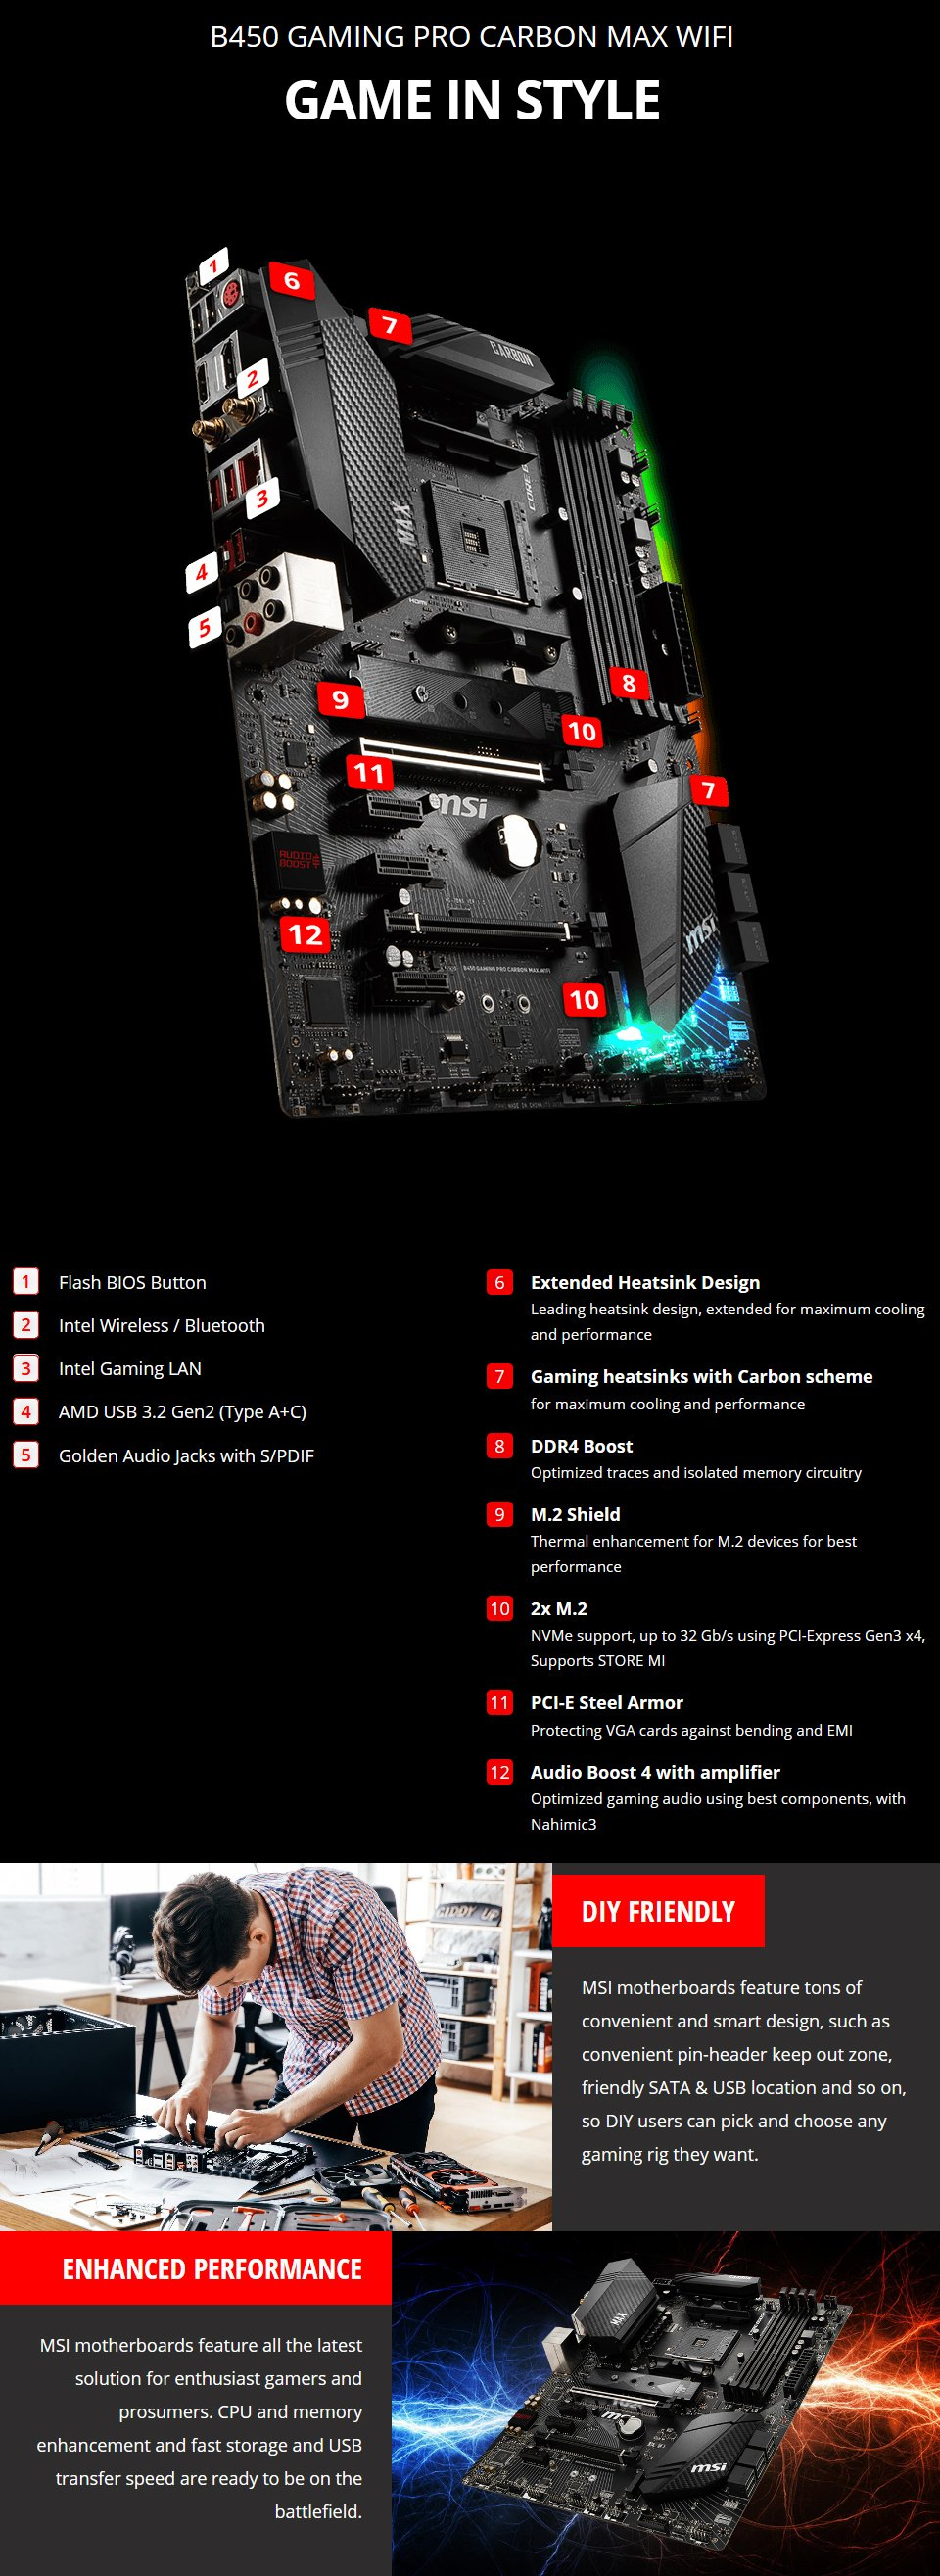 MSI B450 Gaming Pro Carbon Max Wi-Fi Motherboard features